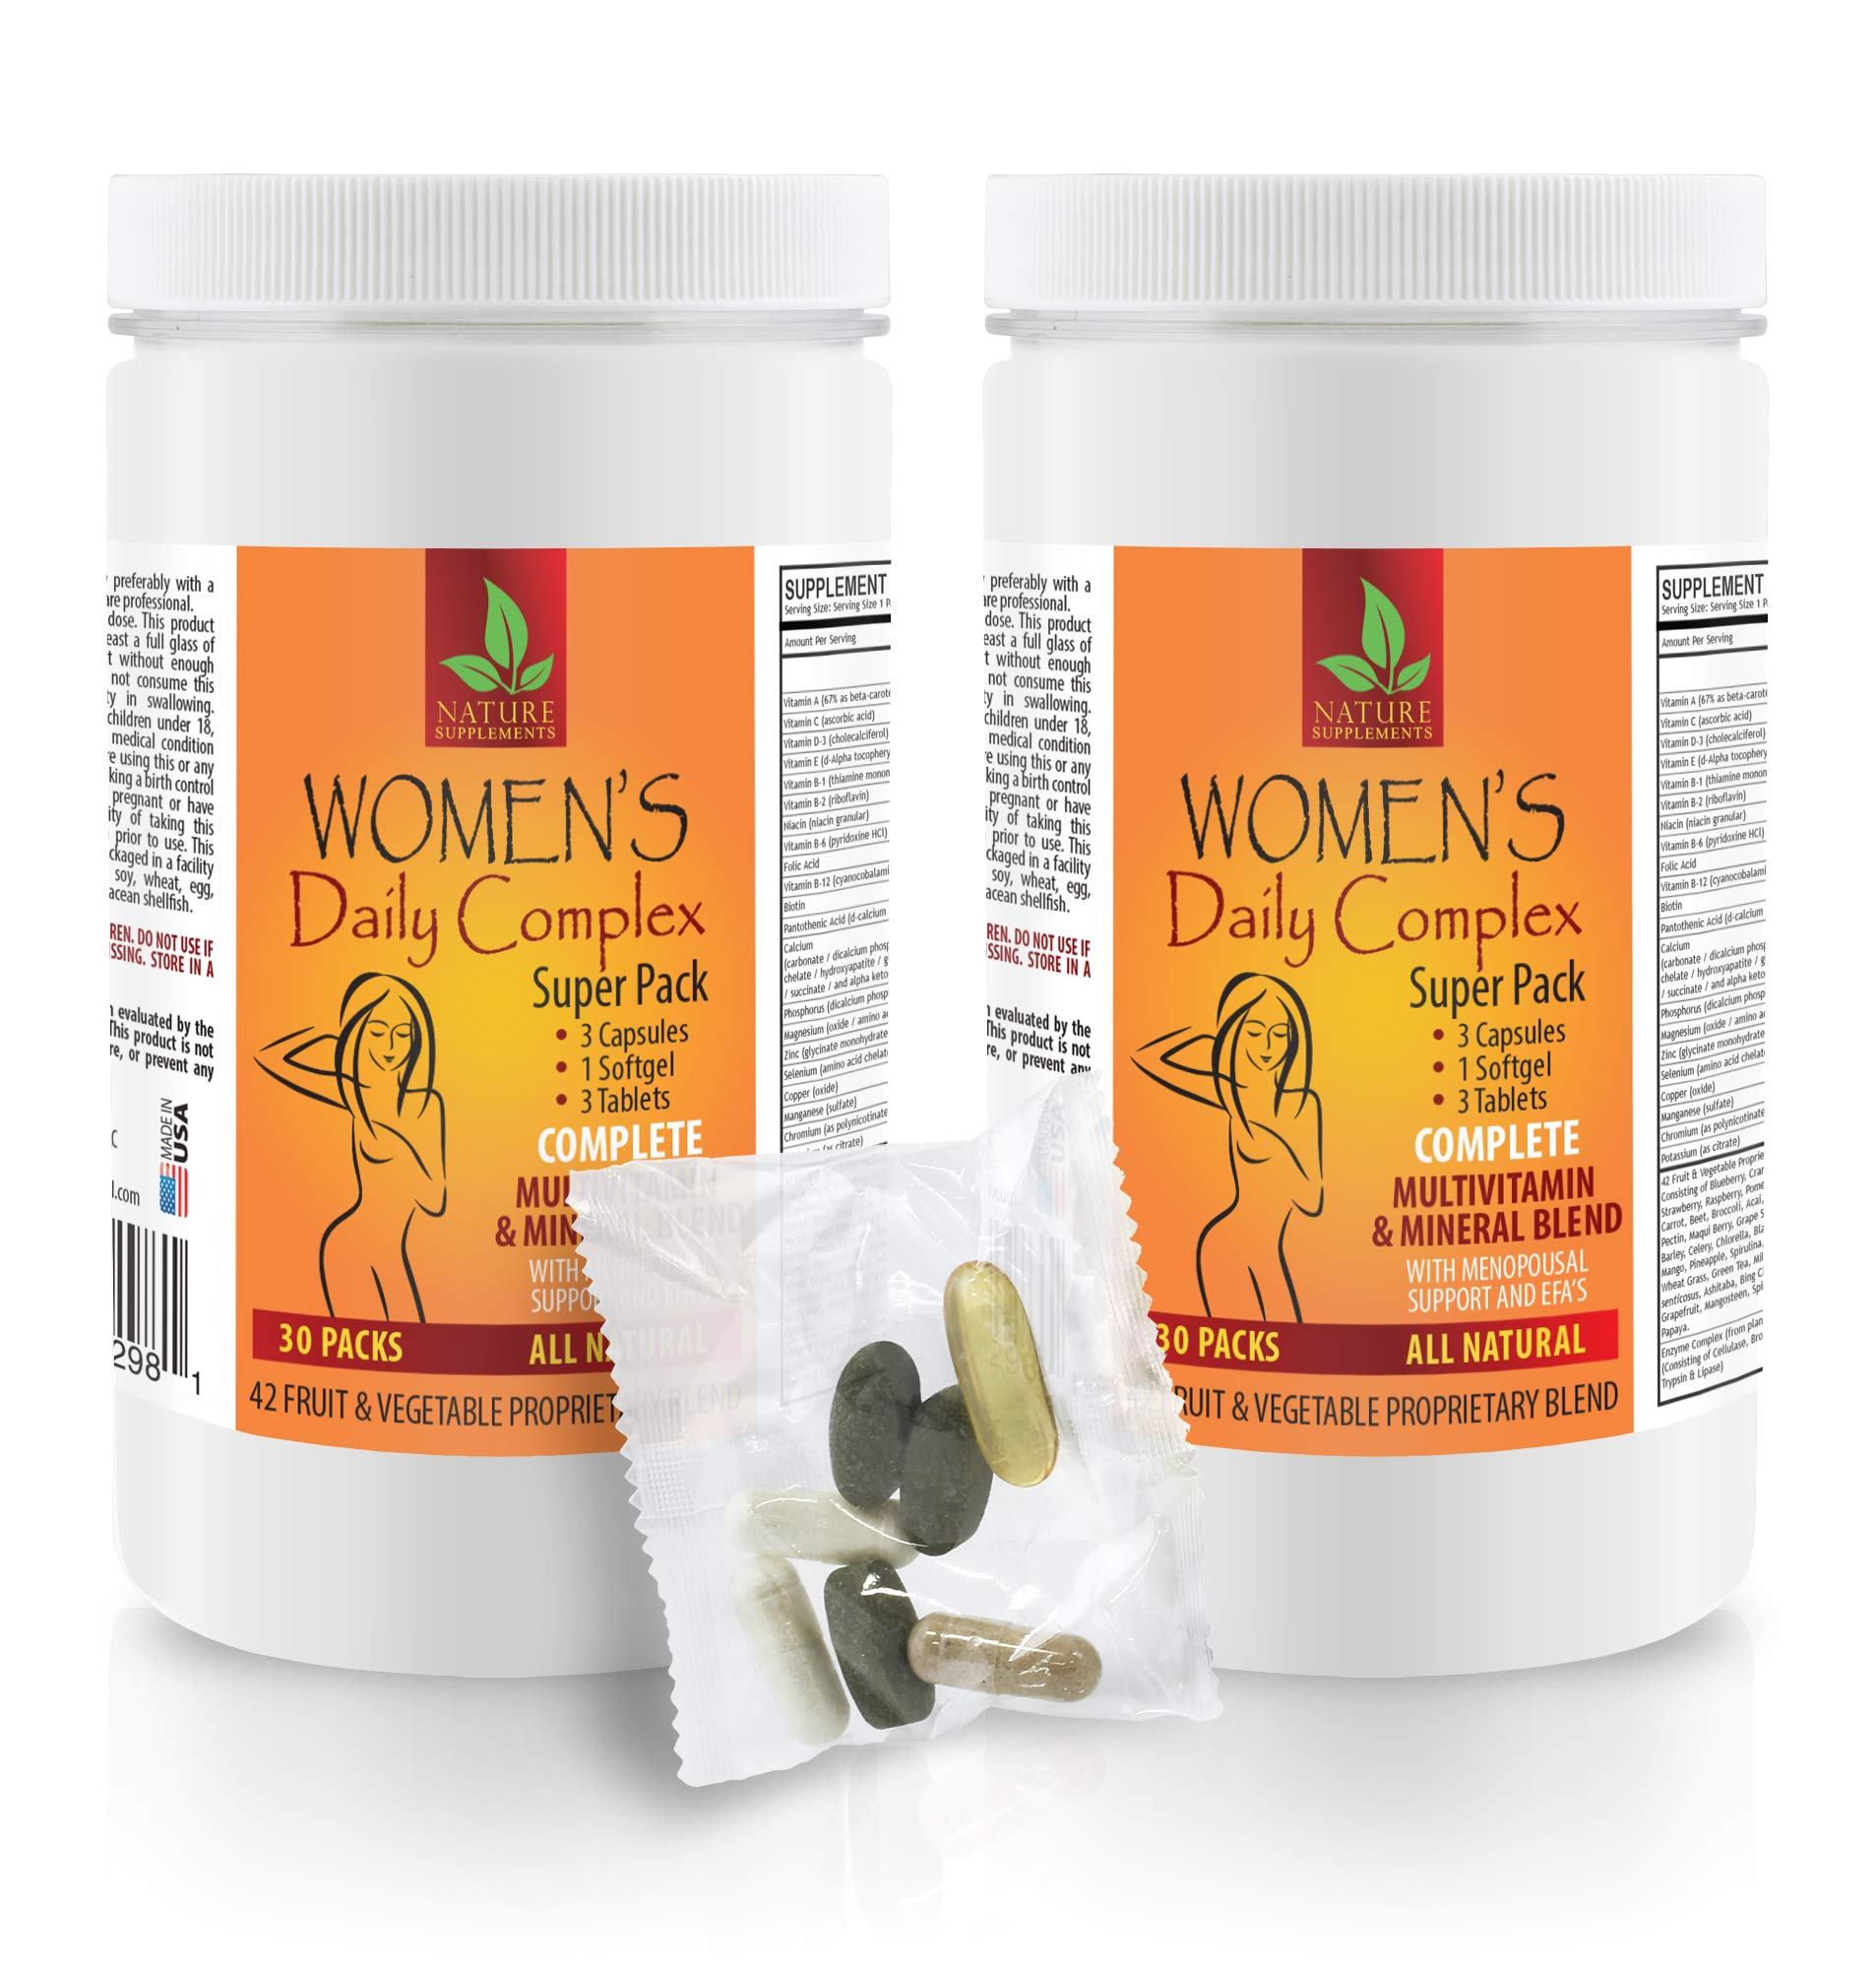 Female Enhancement Supplement - Women's Daily Complex Super Pack - All Natural - zinc Supplement for Women - 2 Cans 60 Packs (420 Pills)